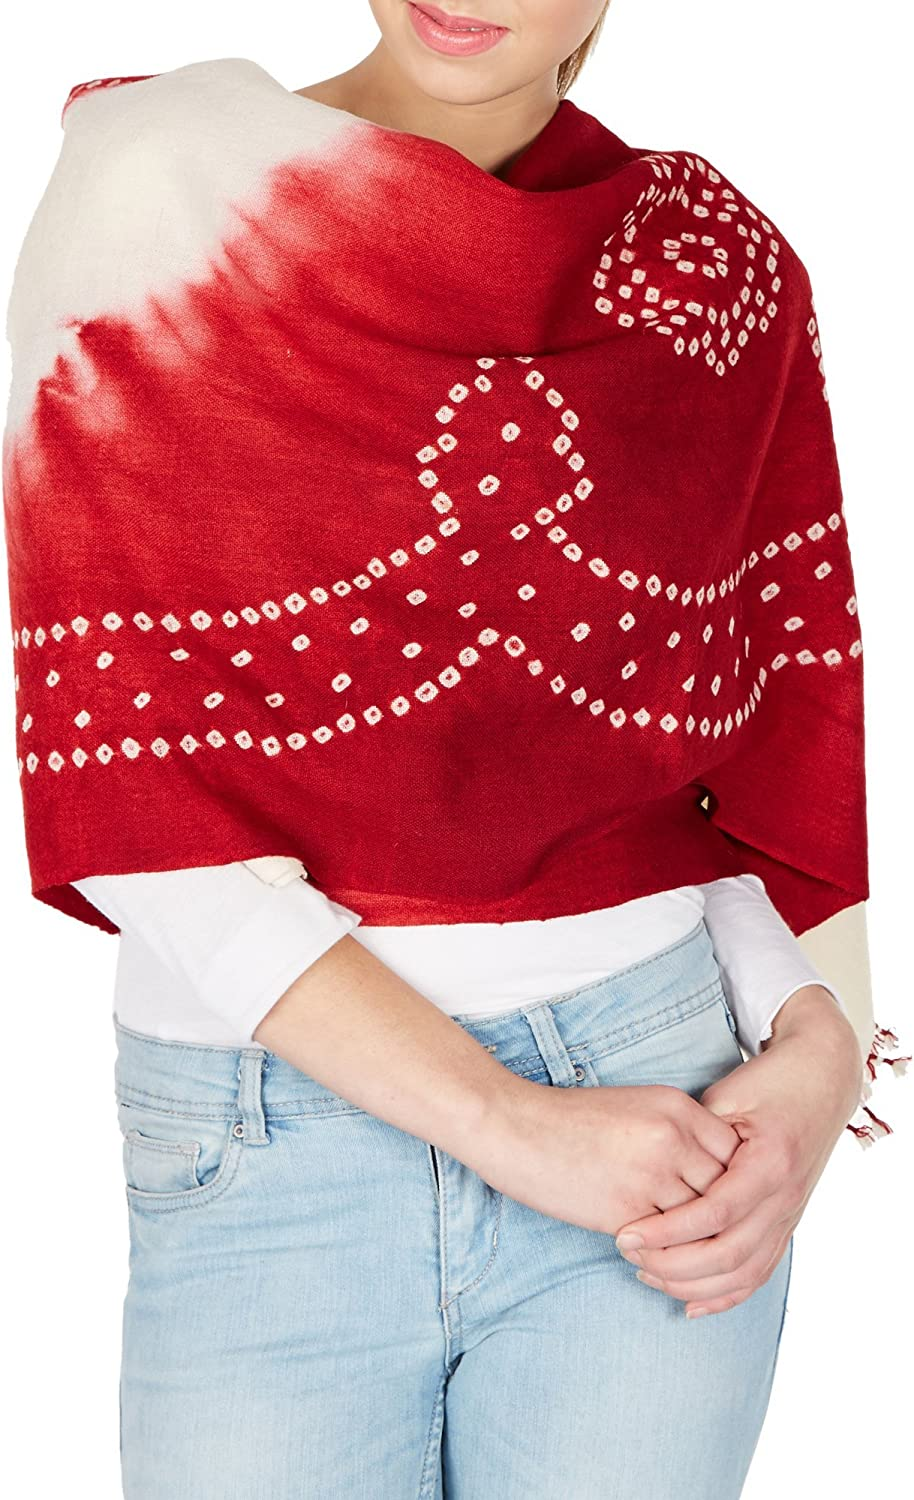 Maroonred Cream Handmade Shawls For Women, Woolen Tie Dye From India Gifts 36X80